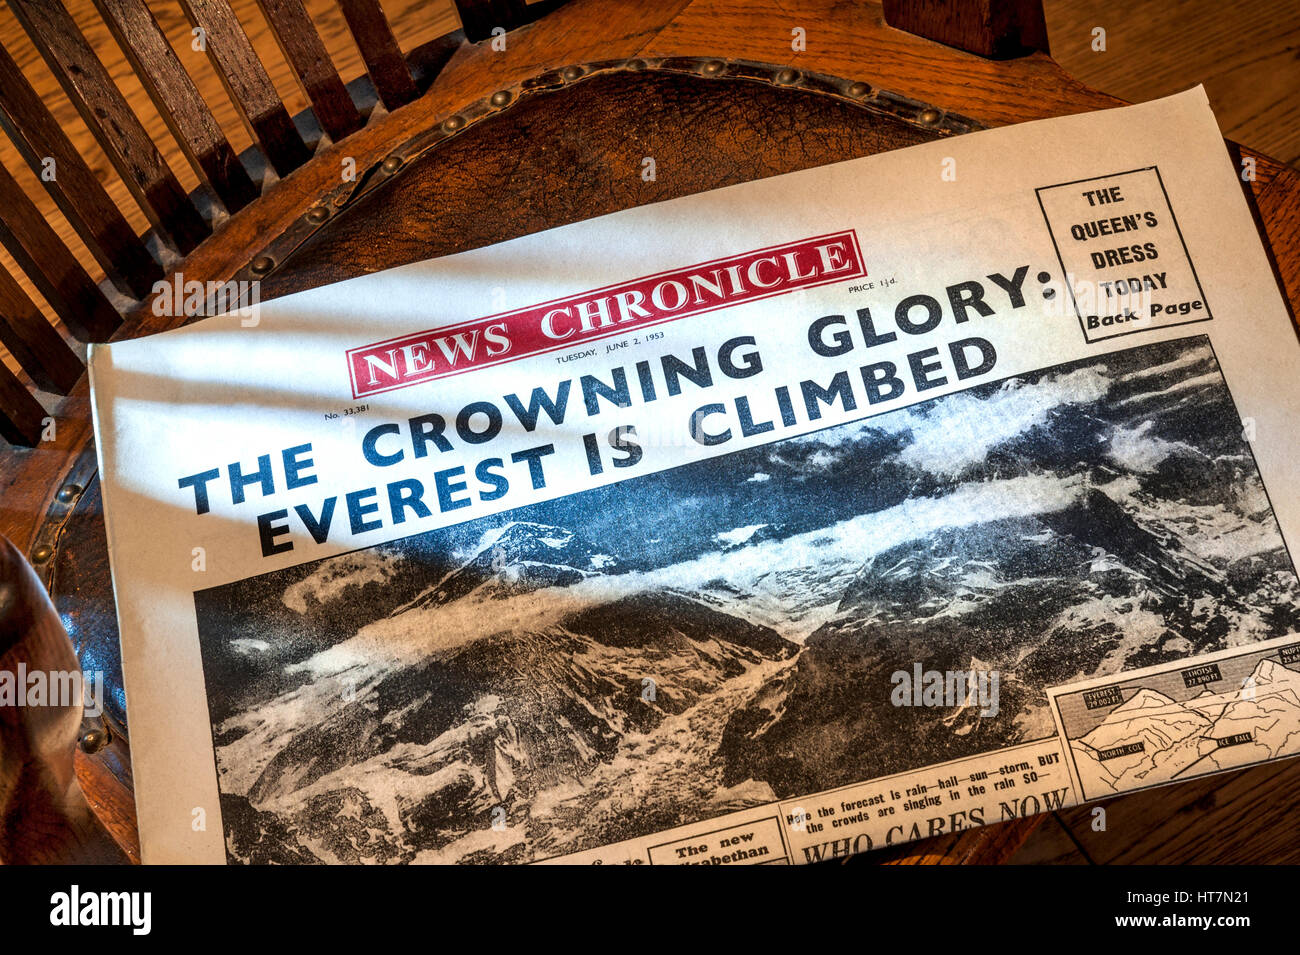 Daily Chronicle from 3rd June 1953 Mount Everest climbed on day of Elizabeth 11 coronation 'The Crowning Glory' - Stock Image